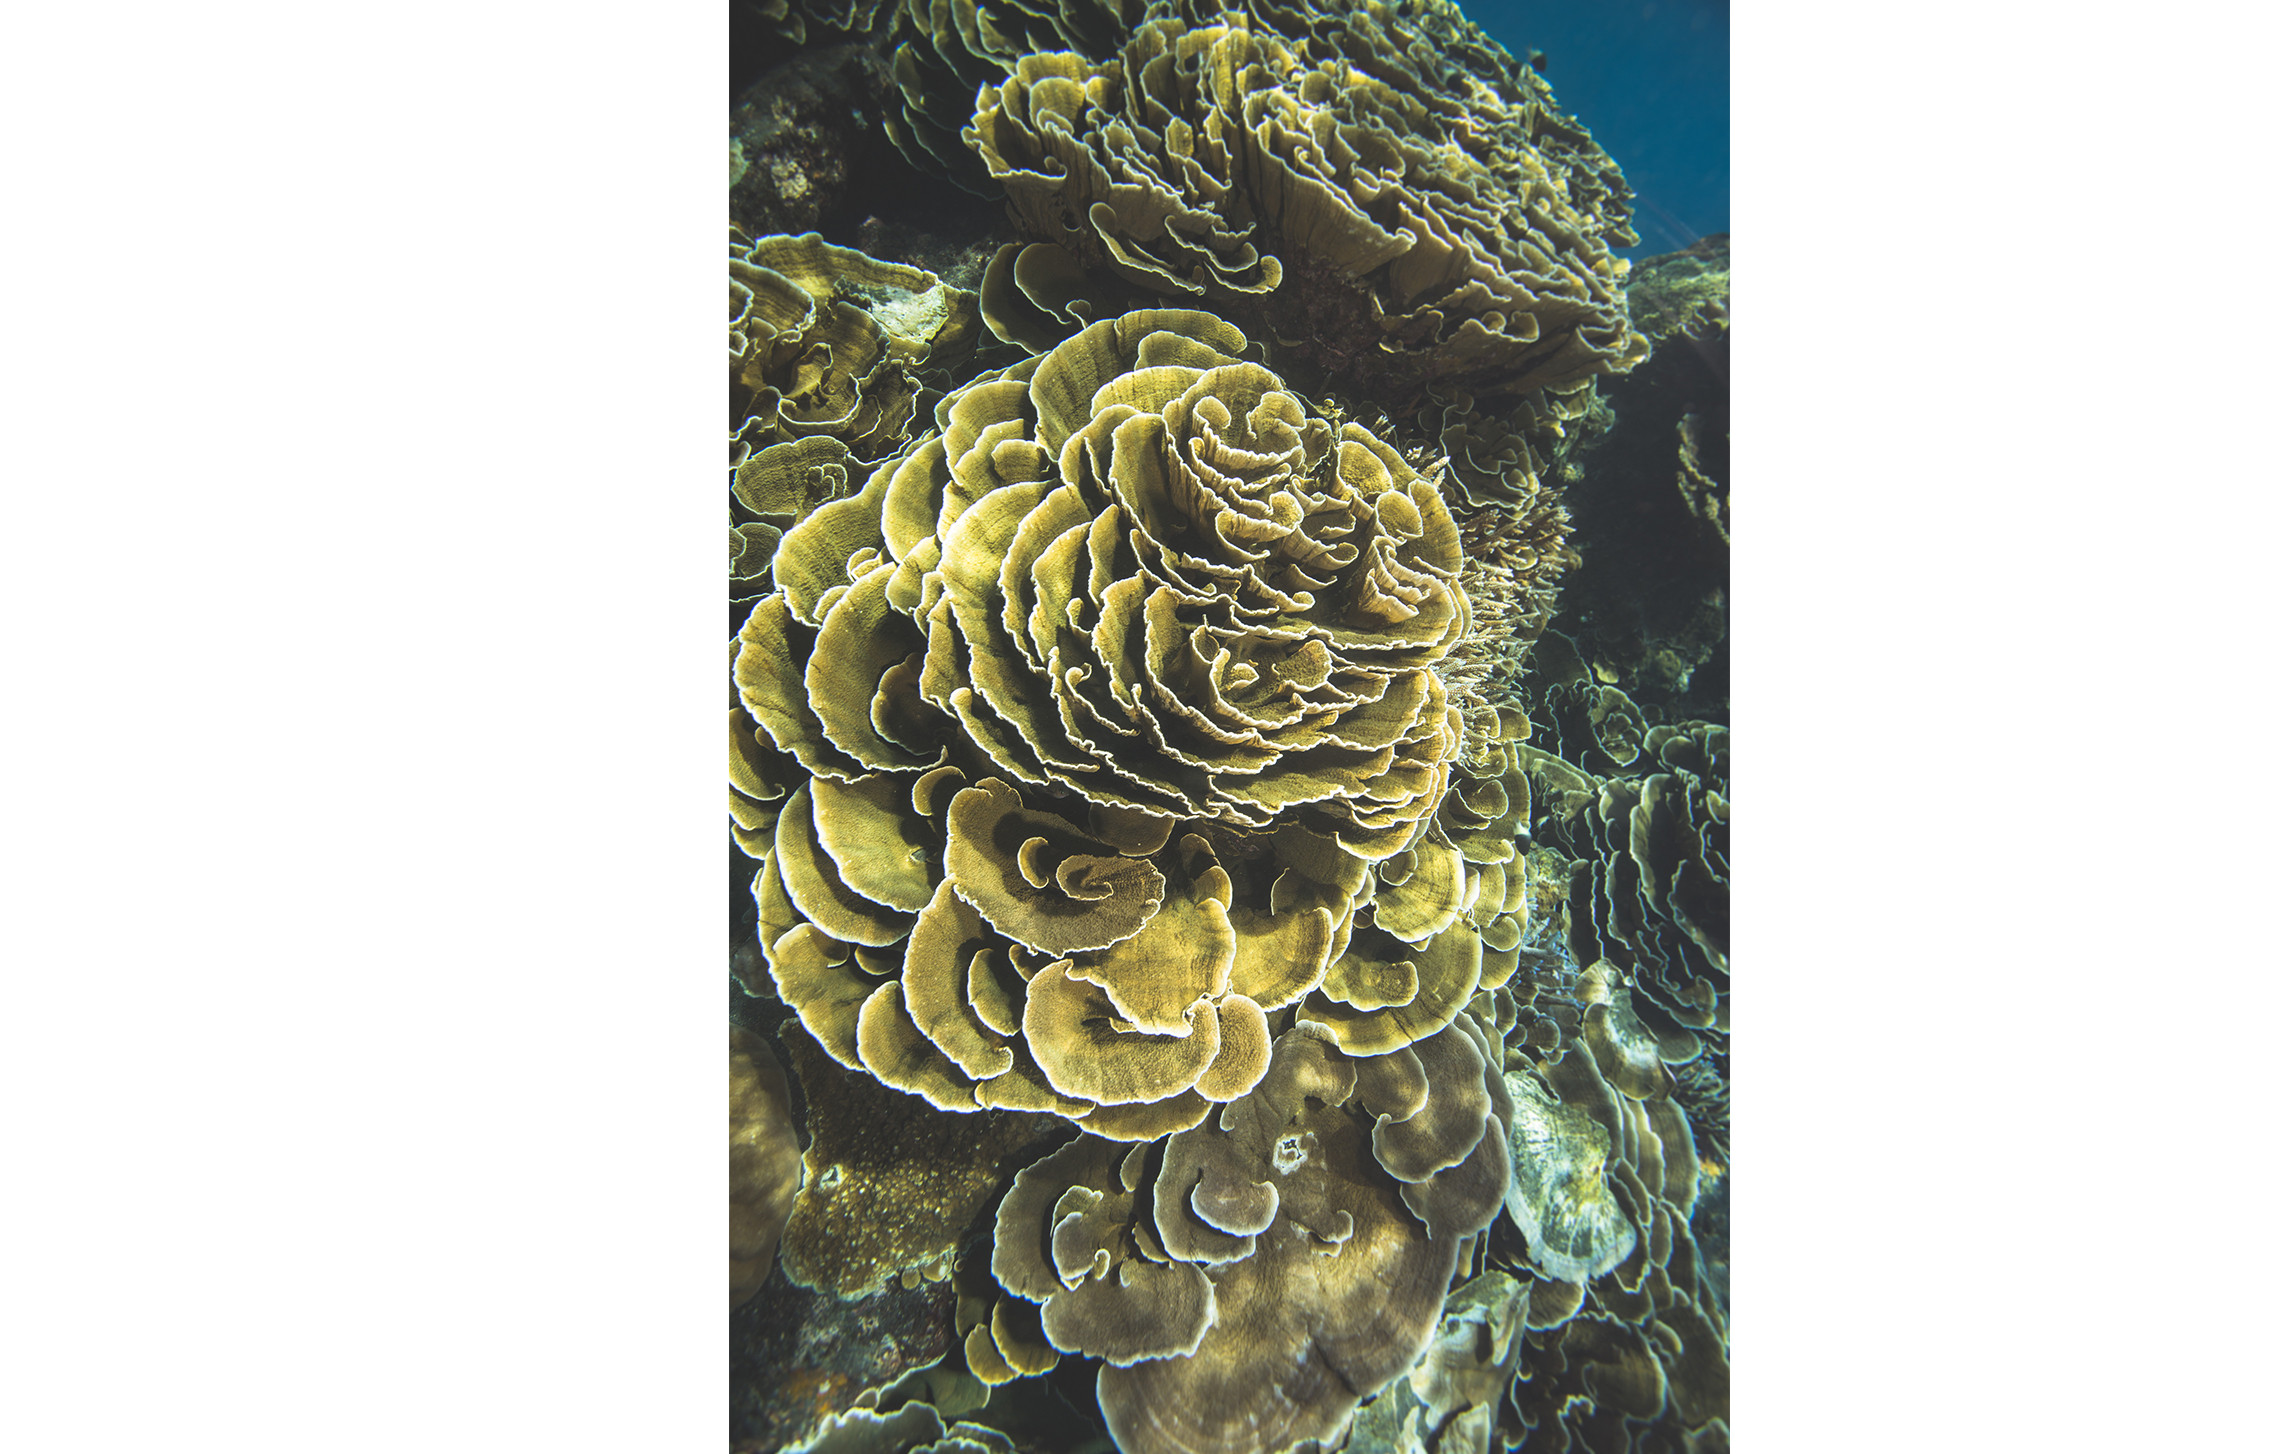 There are around 800 species of hard coral. When you see coral like the montipora, which itself has 85 different species, it's hard to remember that corals are not plants. They often look like shrubs, bushes, or trees.